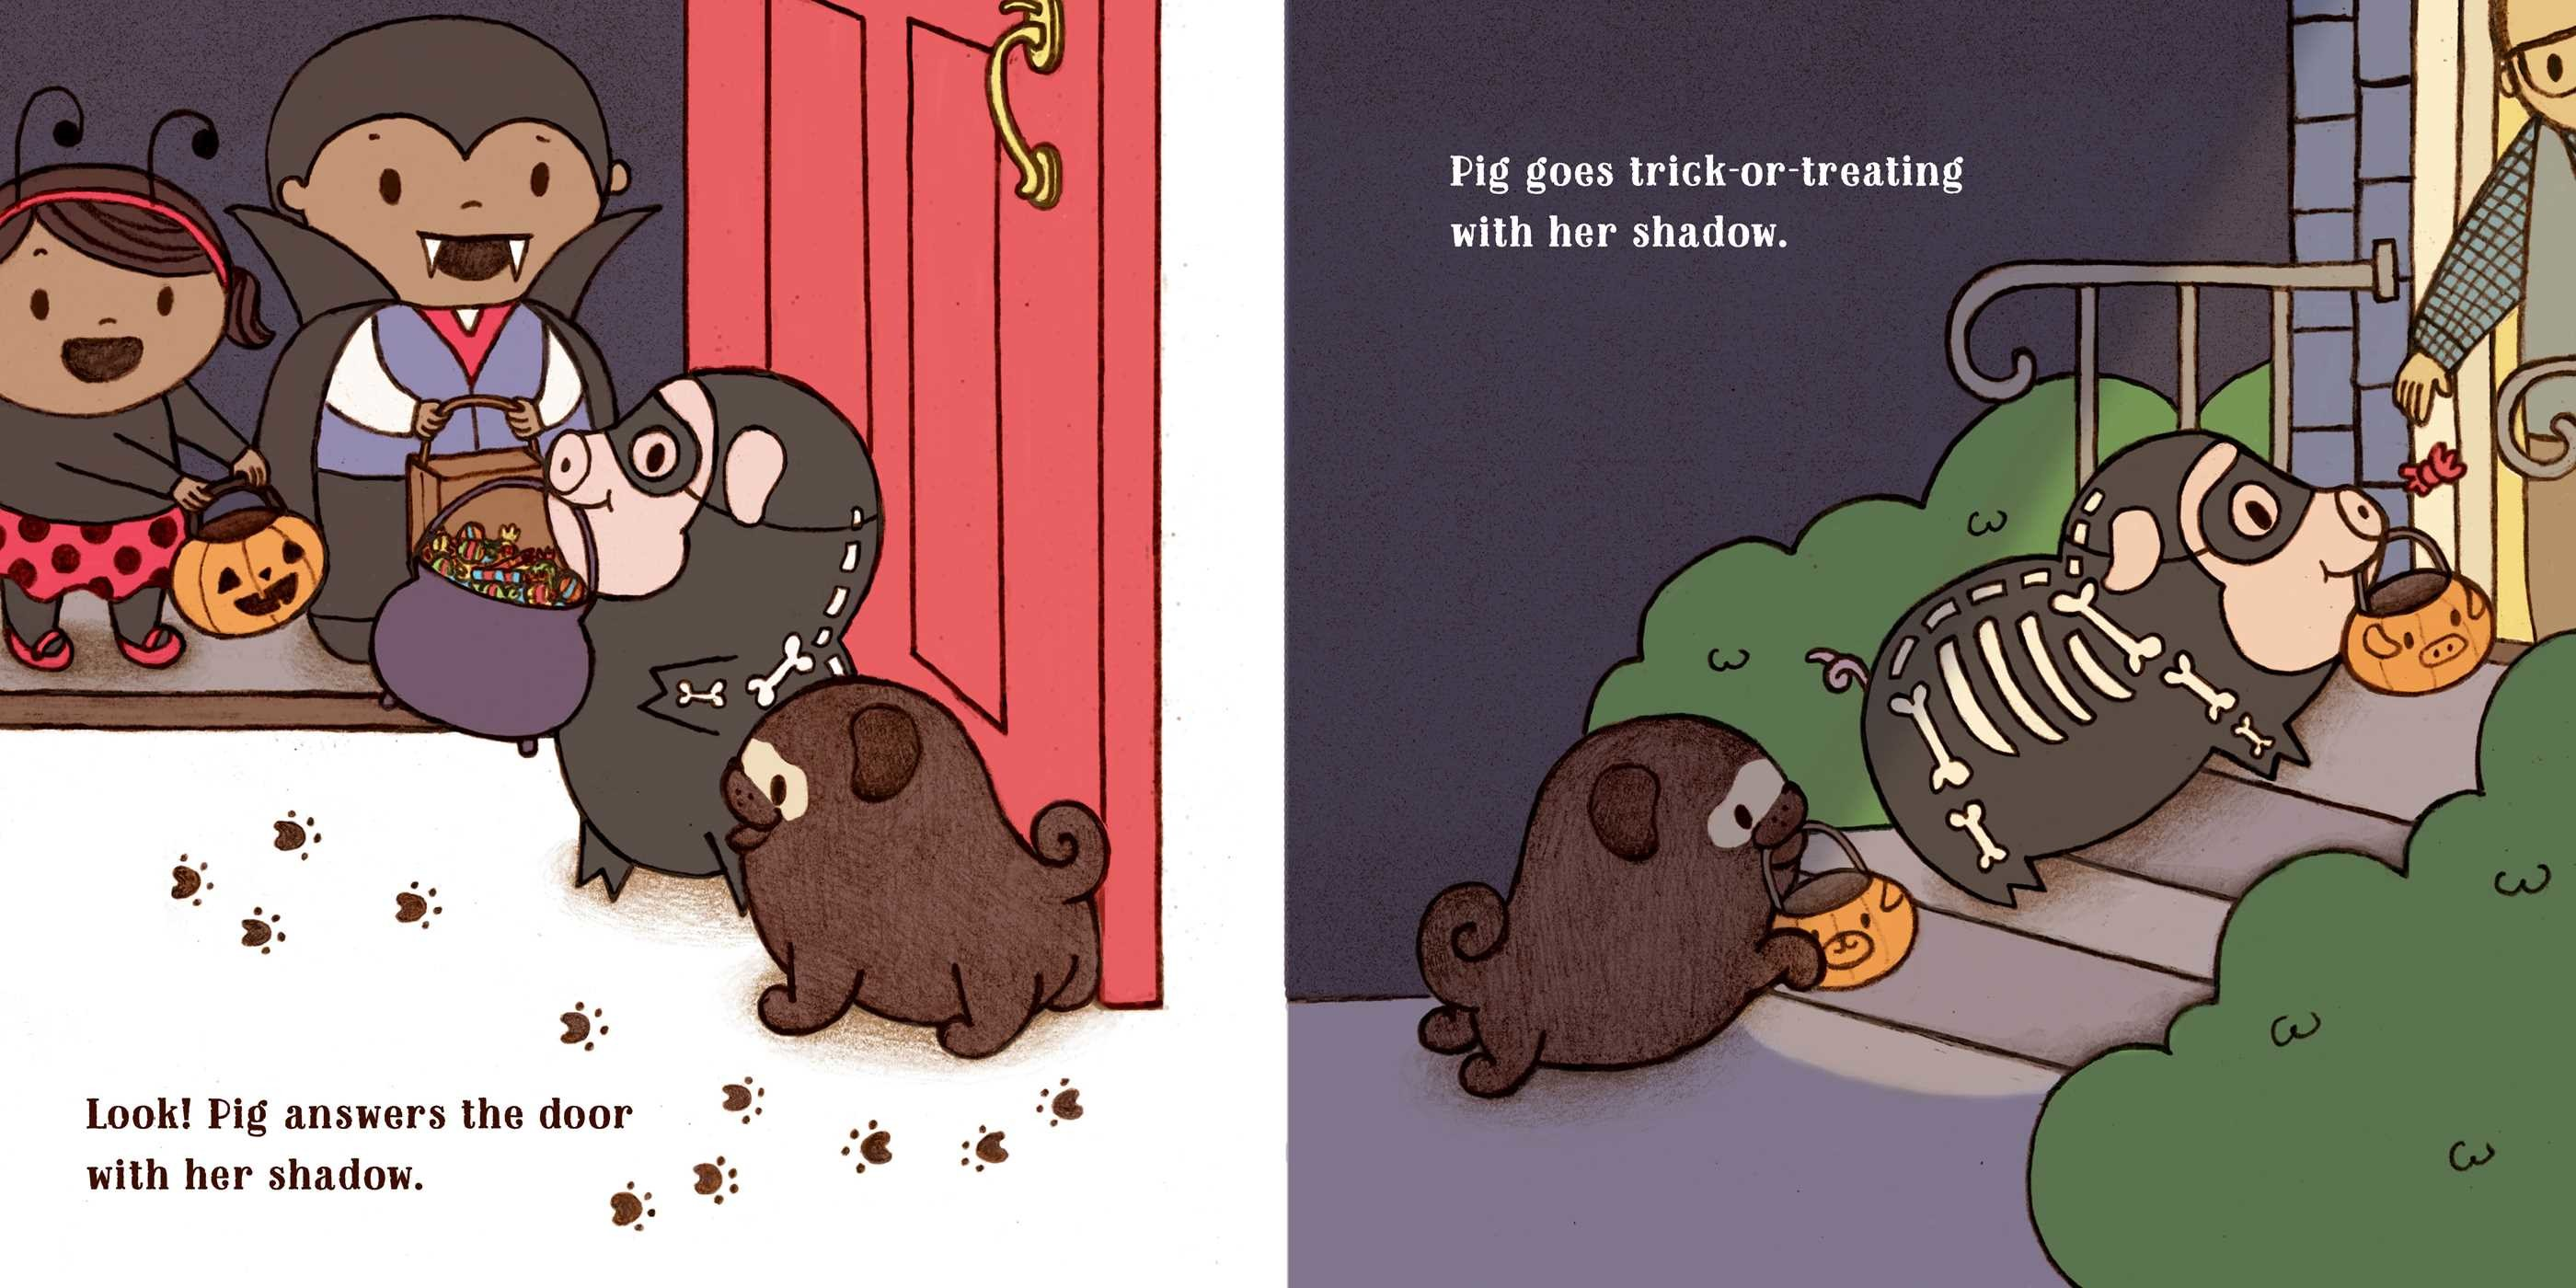 Pug and pig trick or treat 9781481449779.in04